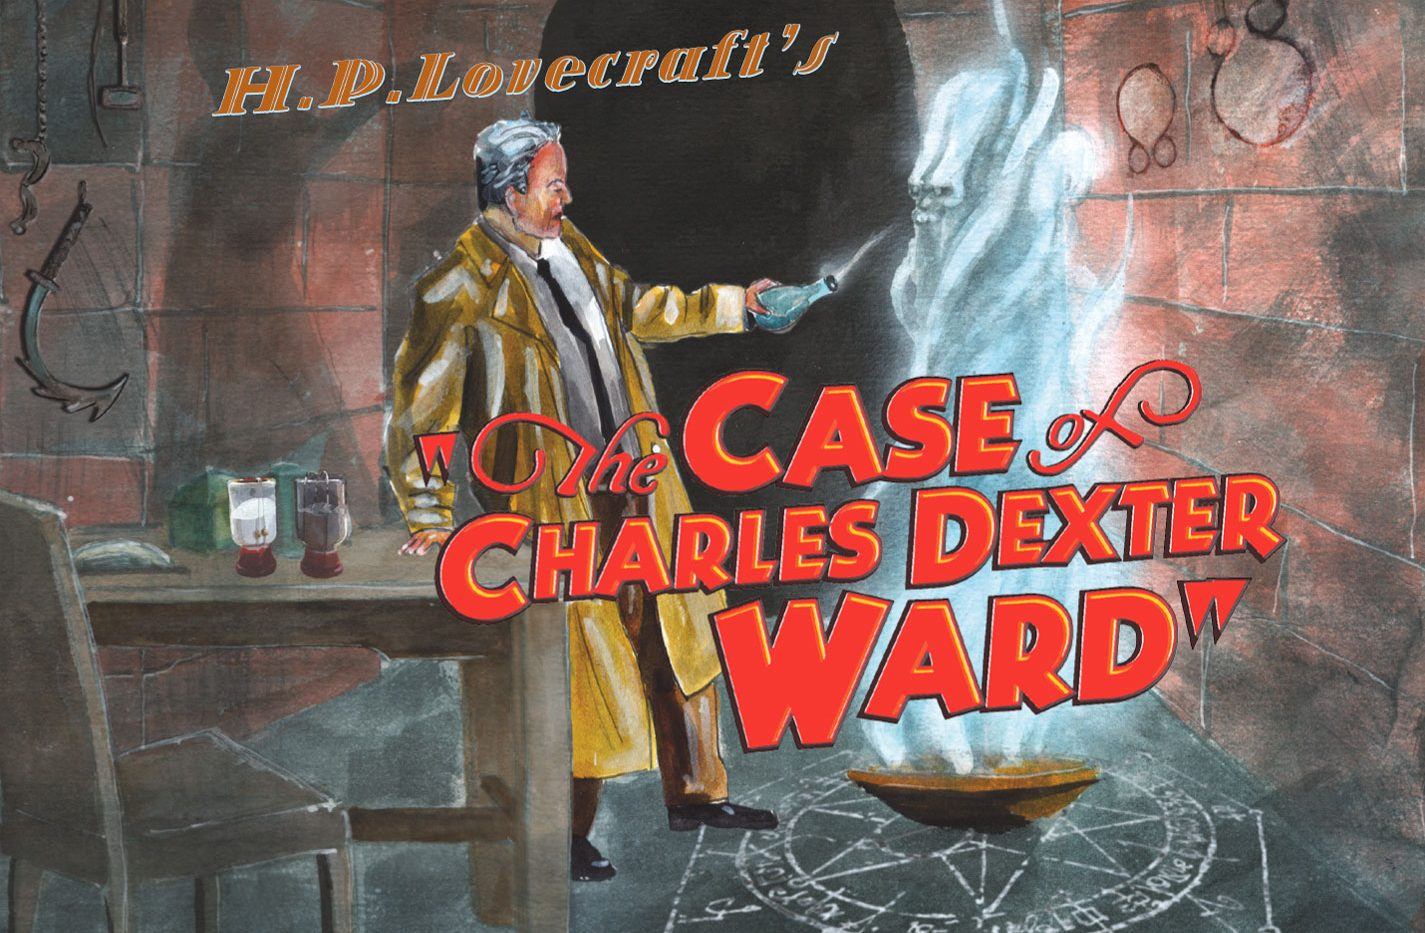 Hörspiel: H.P. Lovecraft – The Case of Charles Dexter Ward